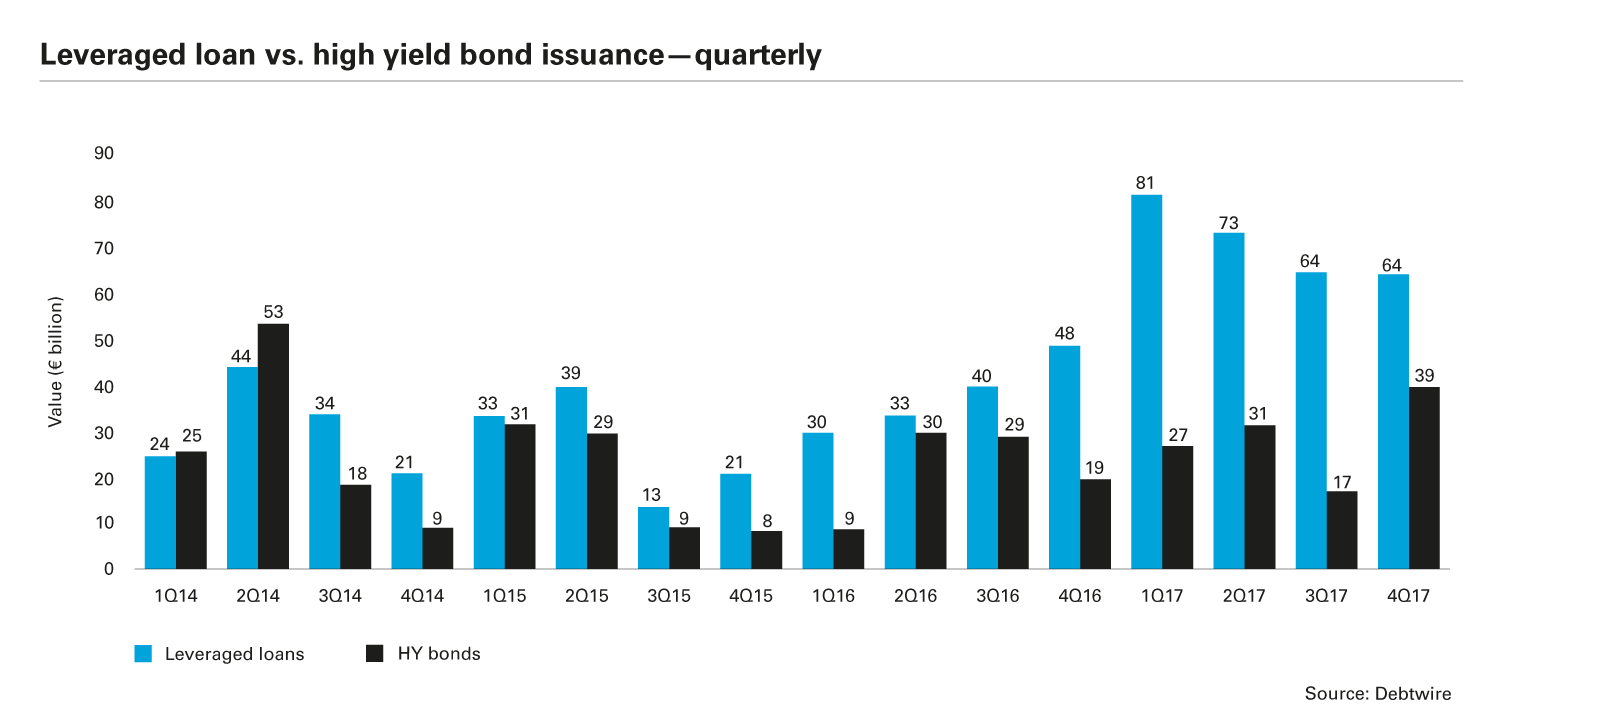 Leveraged loan vs. high yield bond issuance—quarterly